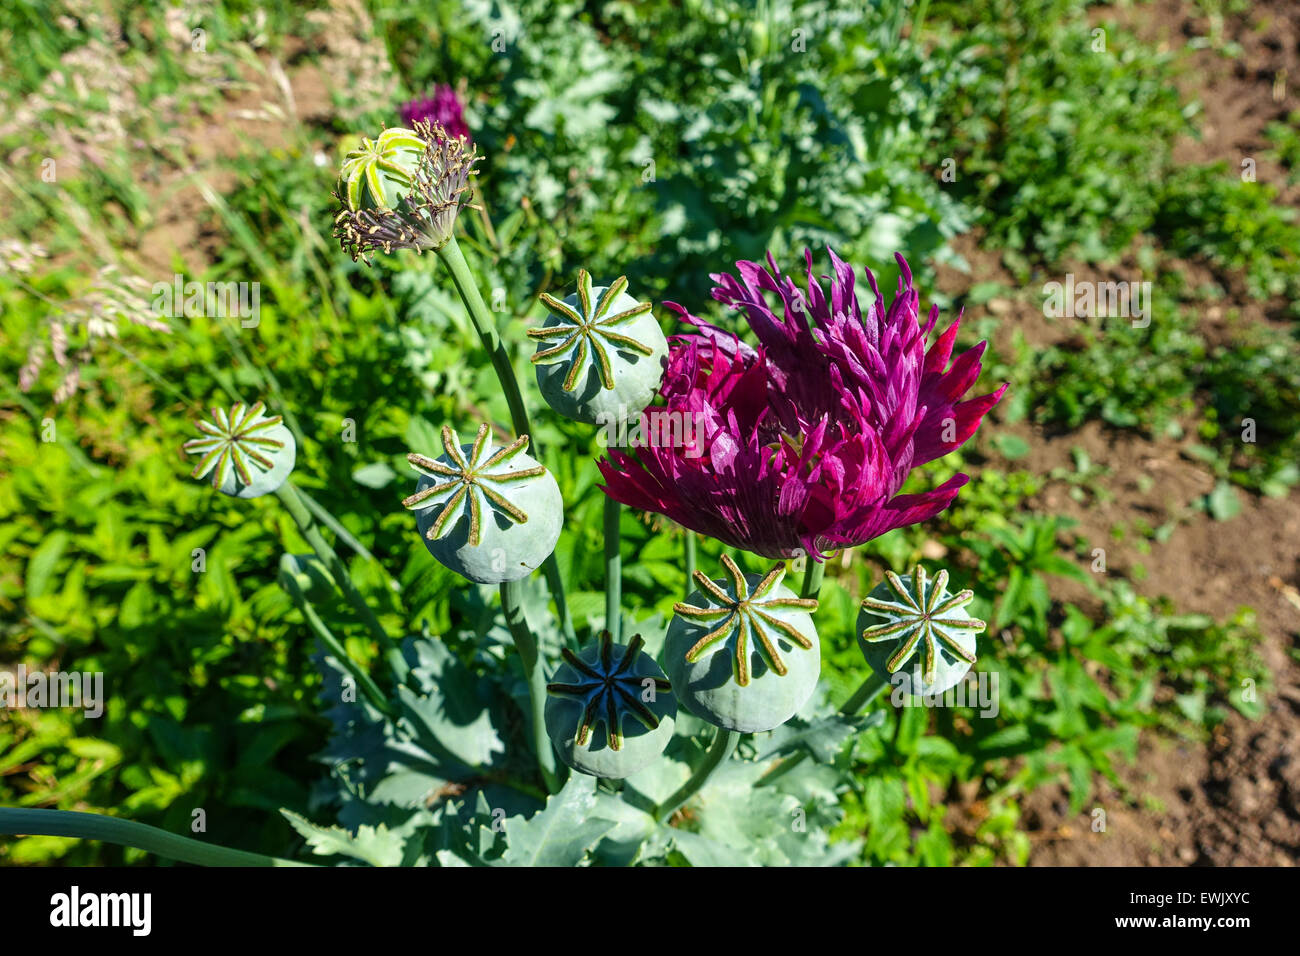 Heroin opium poppy stock photos heroin opium poppy stock images poppy flowers and poppy seed heads opium drugs war on drugs heroin mightylinksfo Image collections